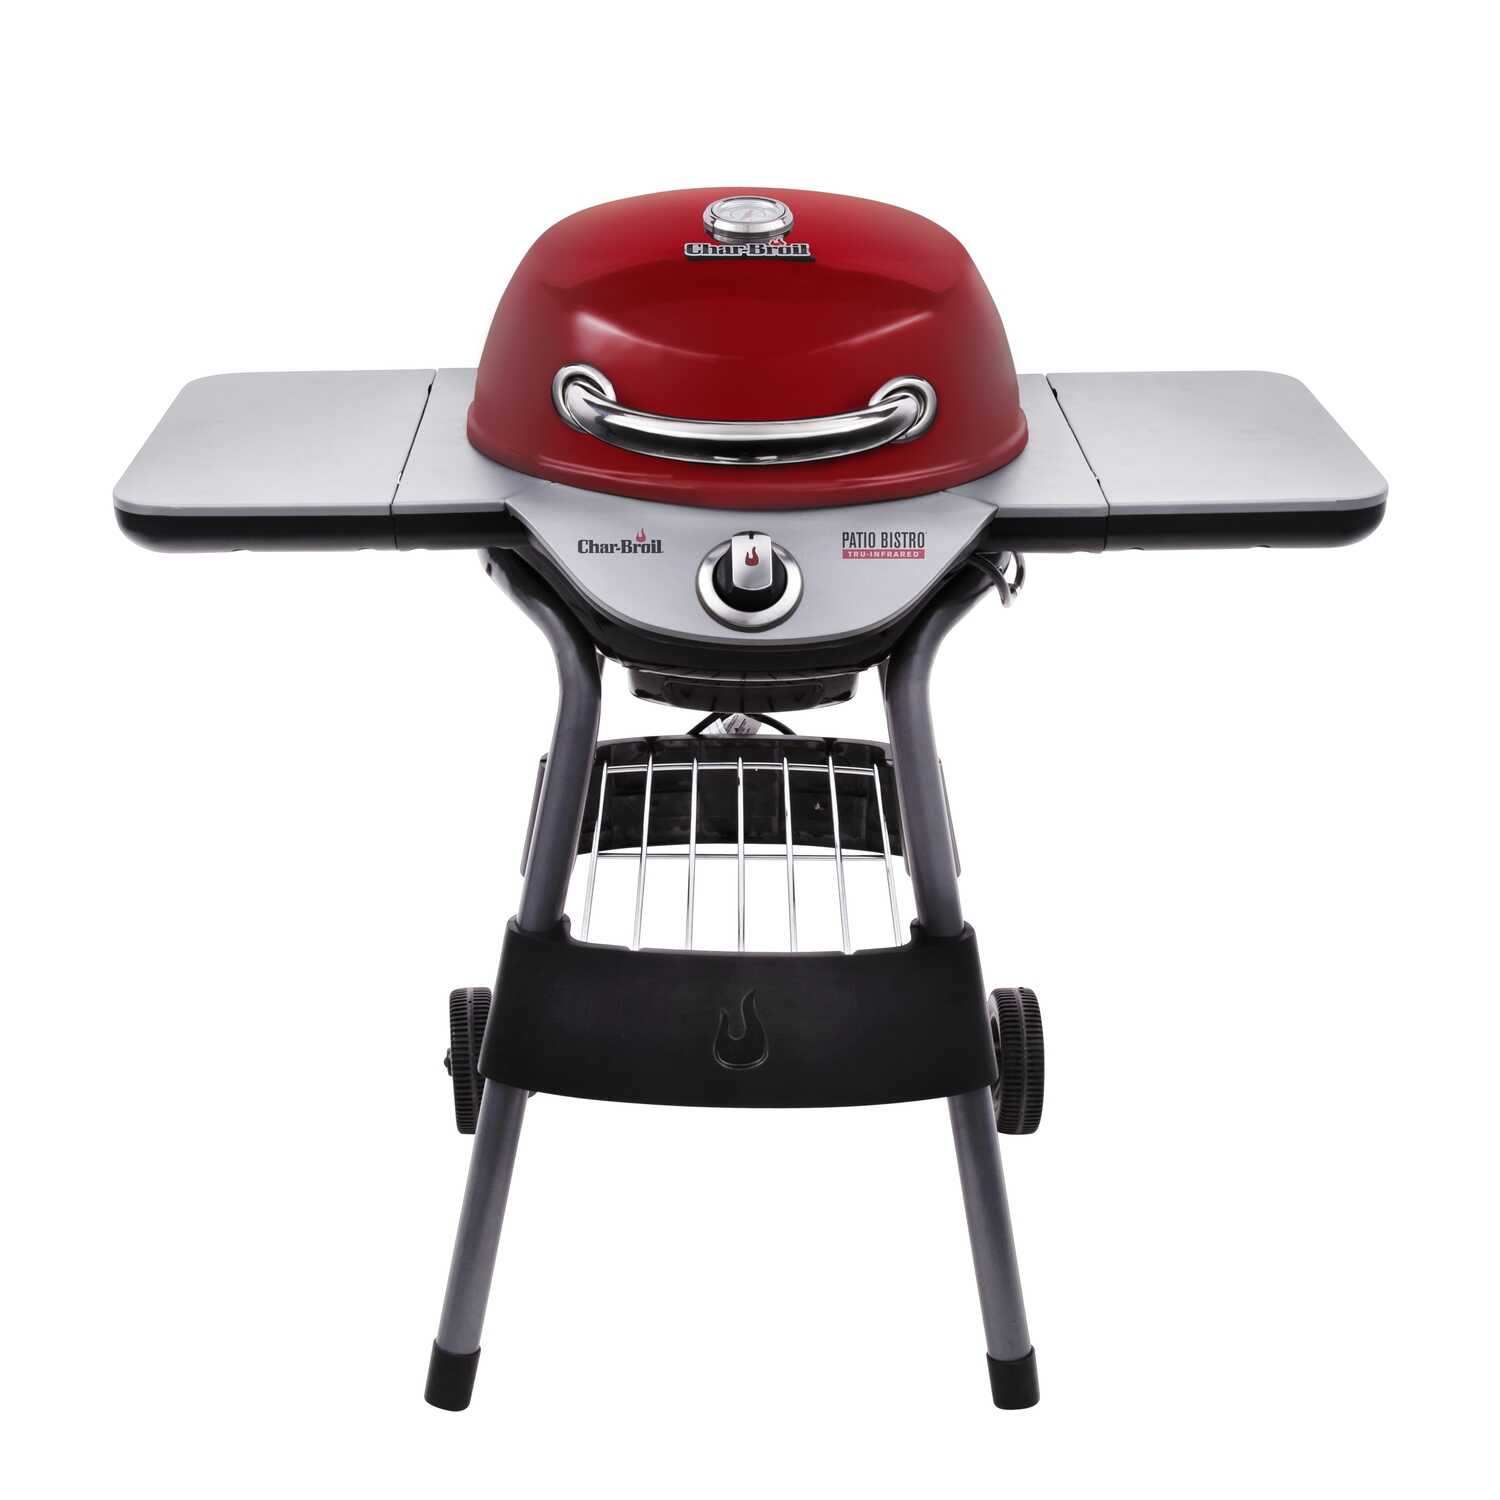 Char-Broil  Bistro  Red  Grill  Electric